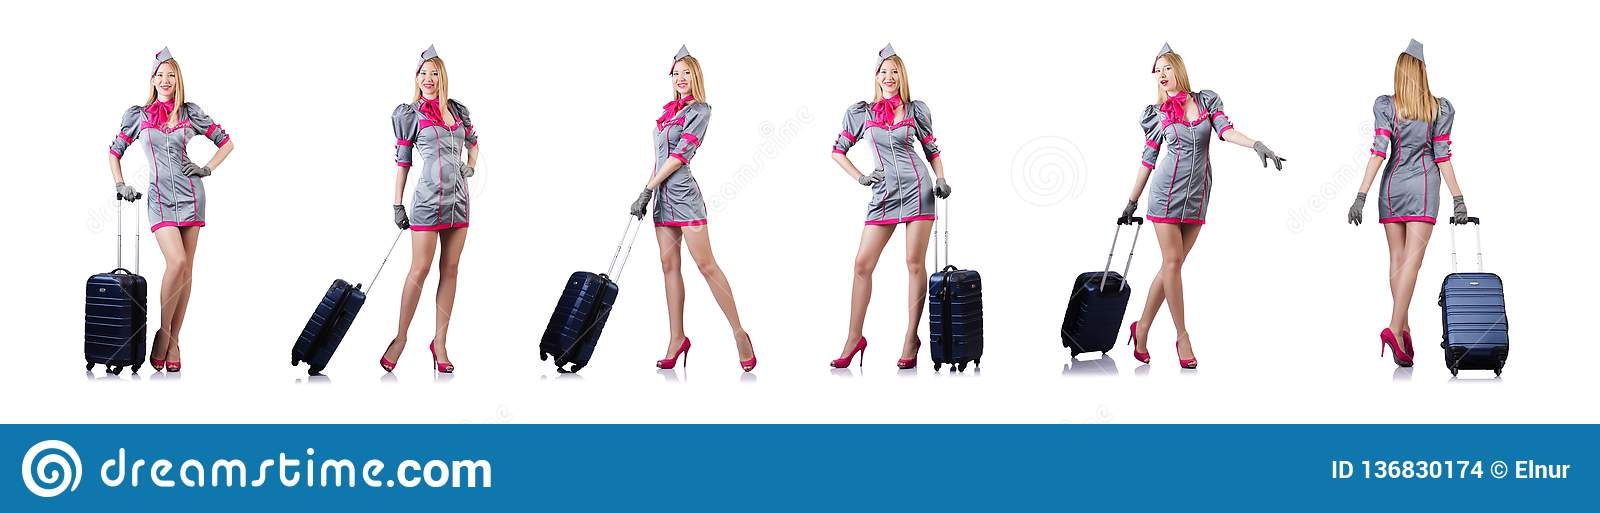 The Airhostess With Luggage On White Stock Photo - Image of